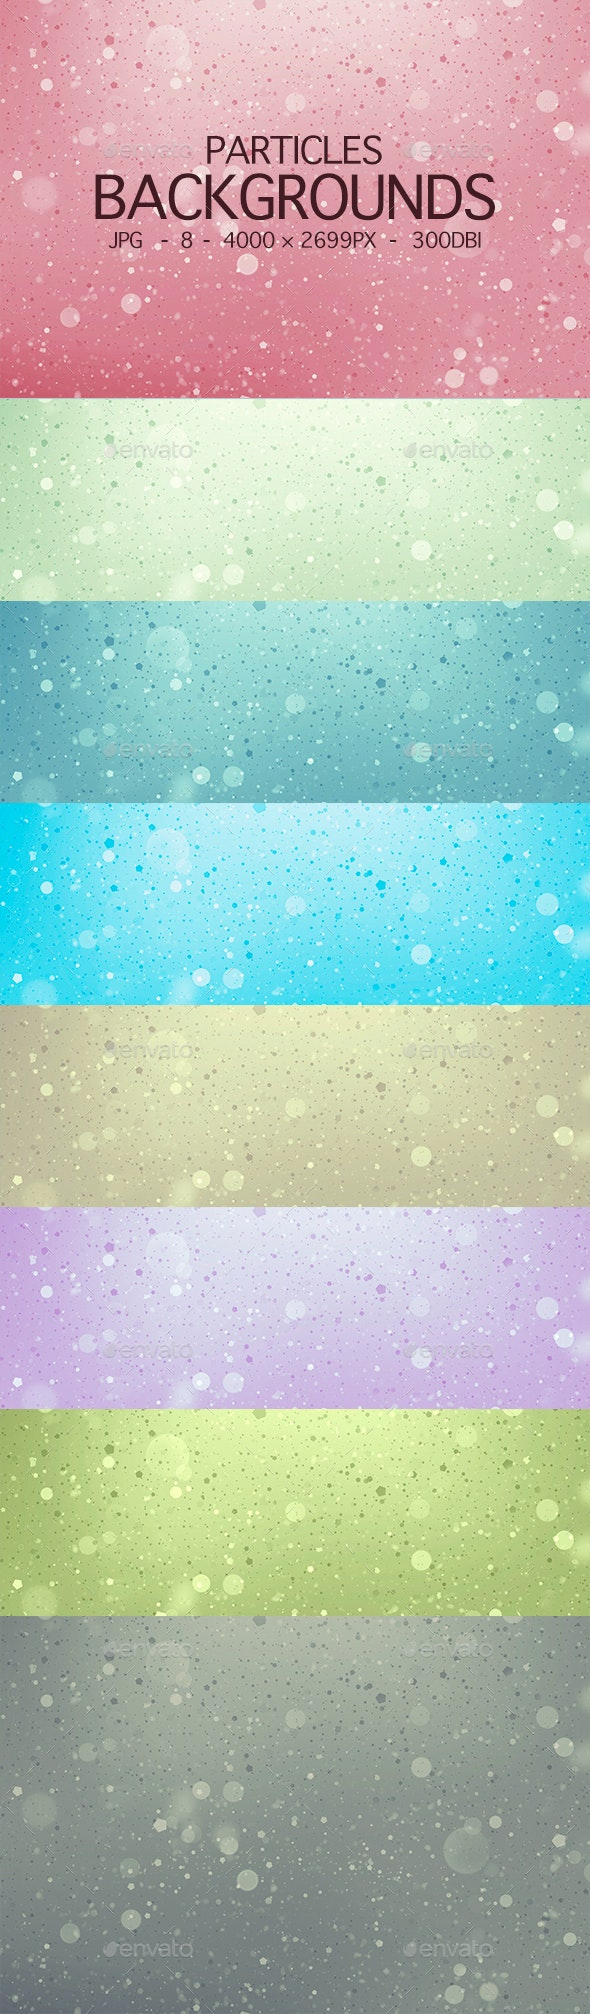 Particles Backgrounds - Backgrounds Graphics